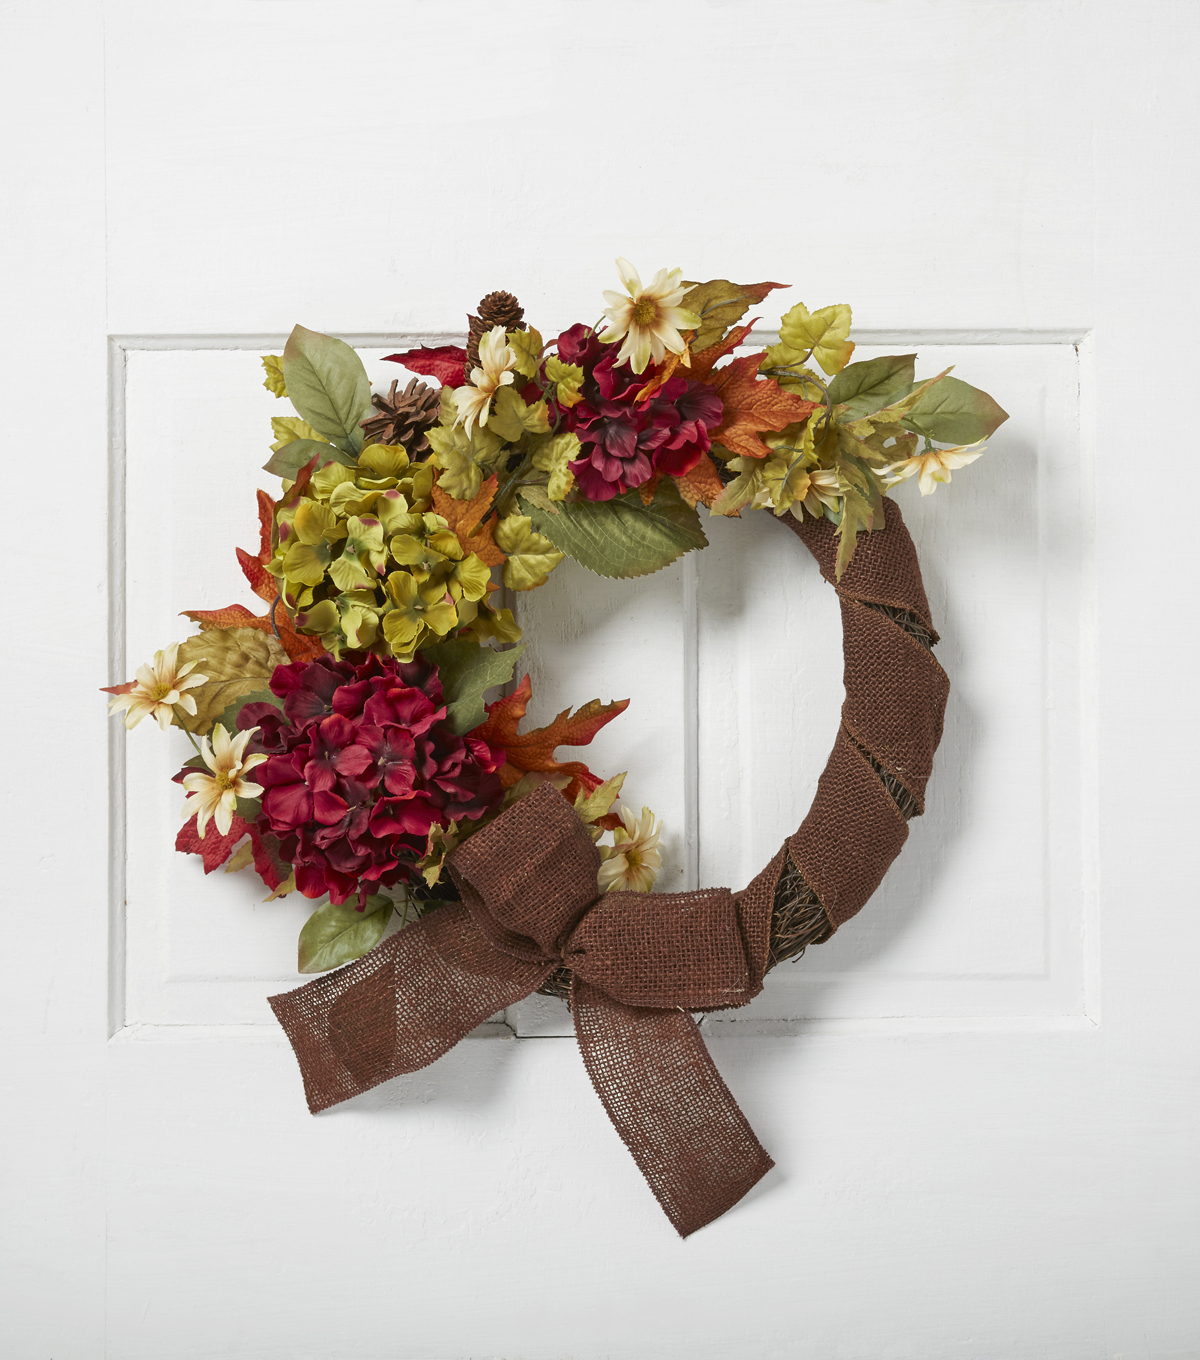 Blooming Autumn Hydrangea Daisy Wreath With Bow-Burgundy, Green & Brown